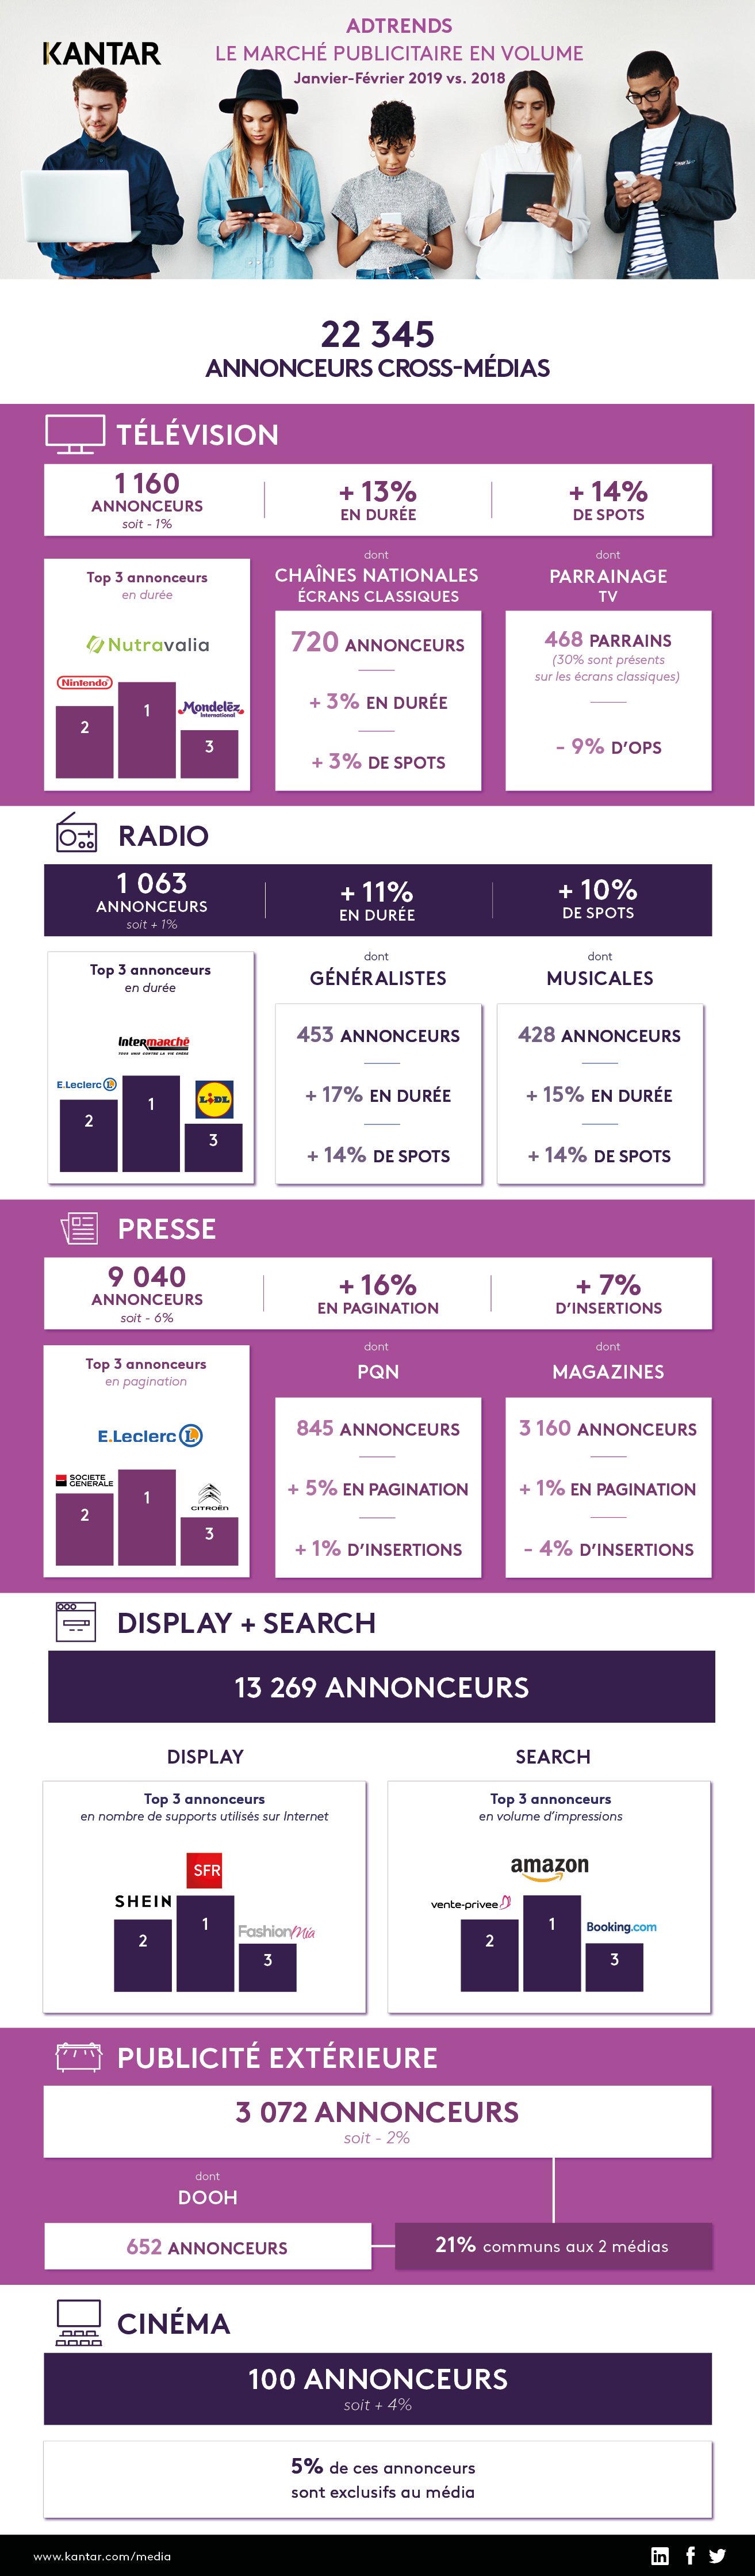 Infographie AdTrends Jan-Fev 2019